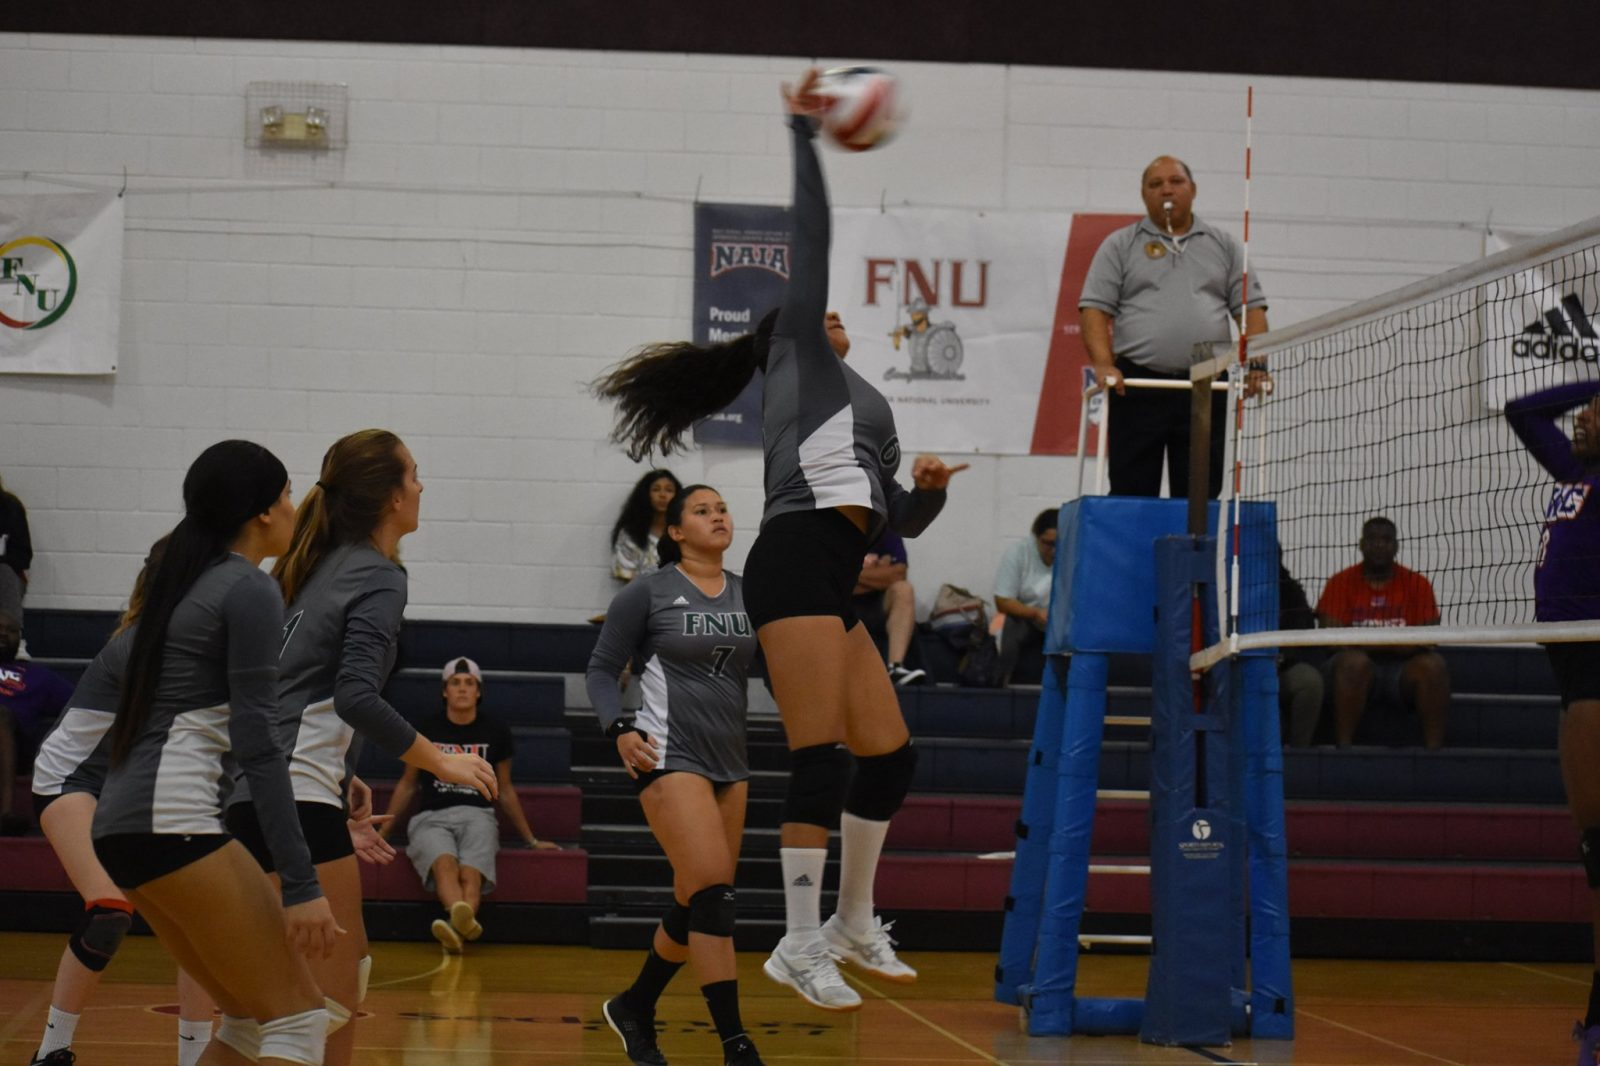 FNU Volleyball Player Attacking the ball during the game